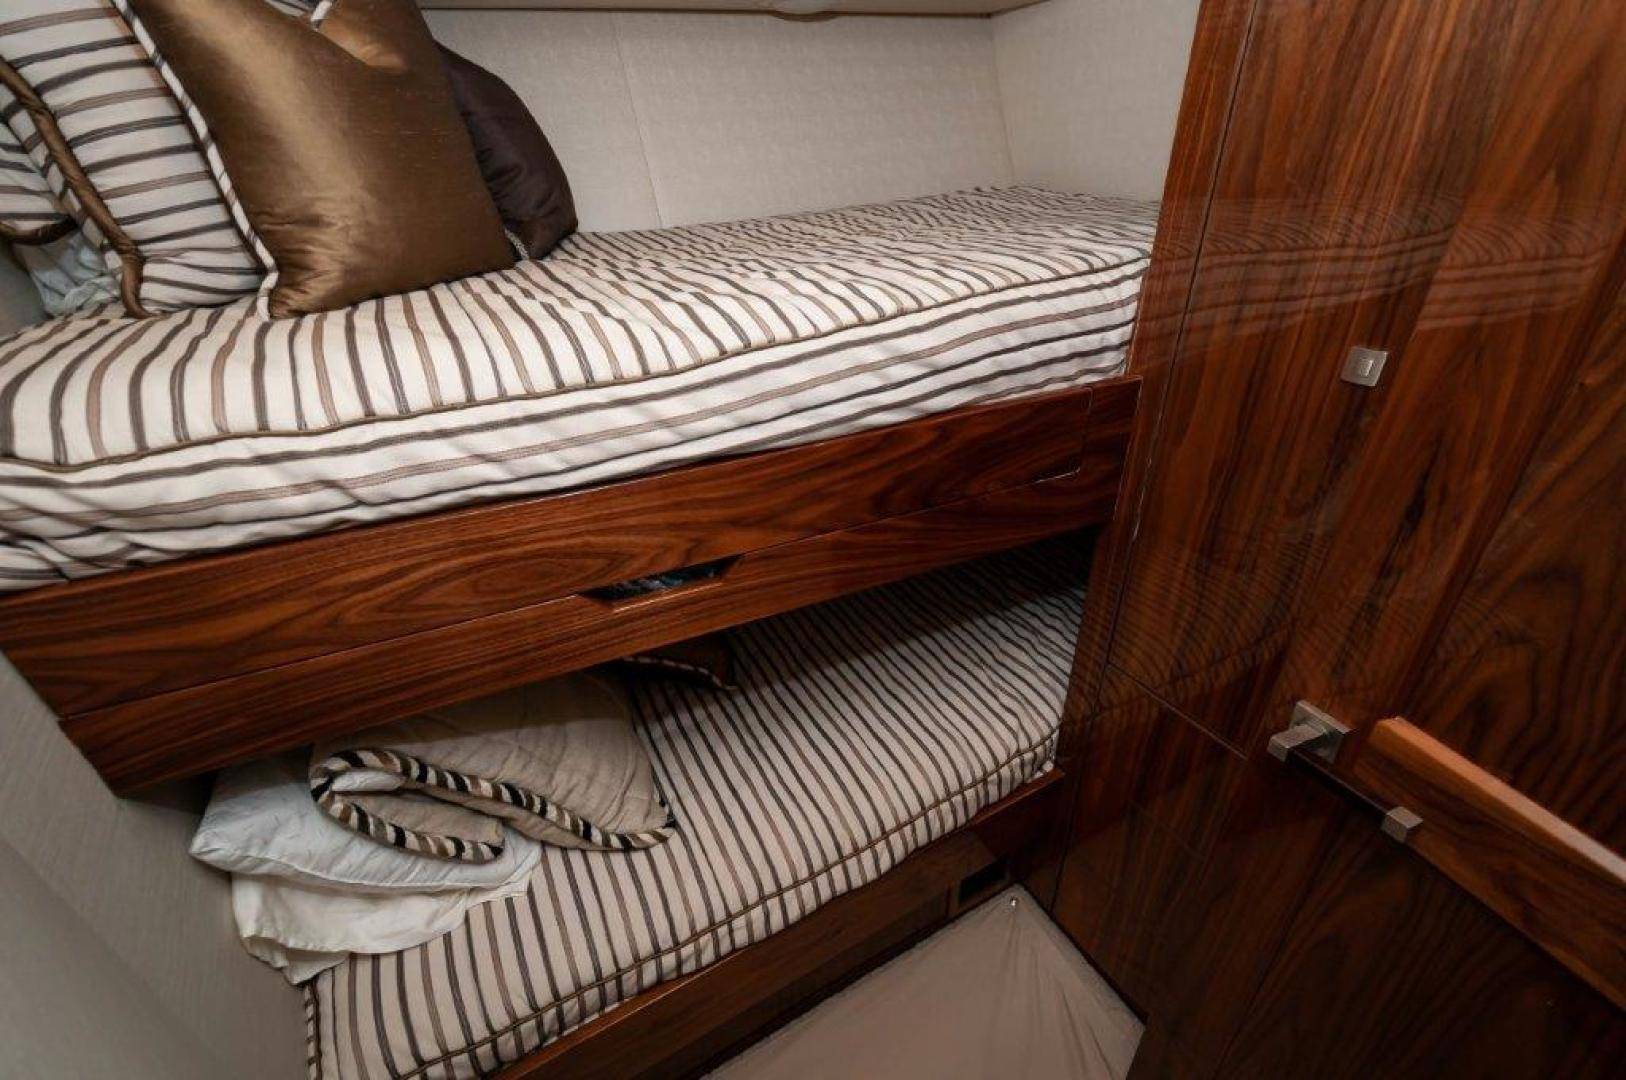 Viking-72 Enclosed Bridge 2017-SHARE E Orange Beach-Alabama-United States-2017 72 EB Viking SHARE-E Bunk Room-1233212 | Thumbnail